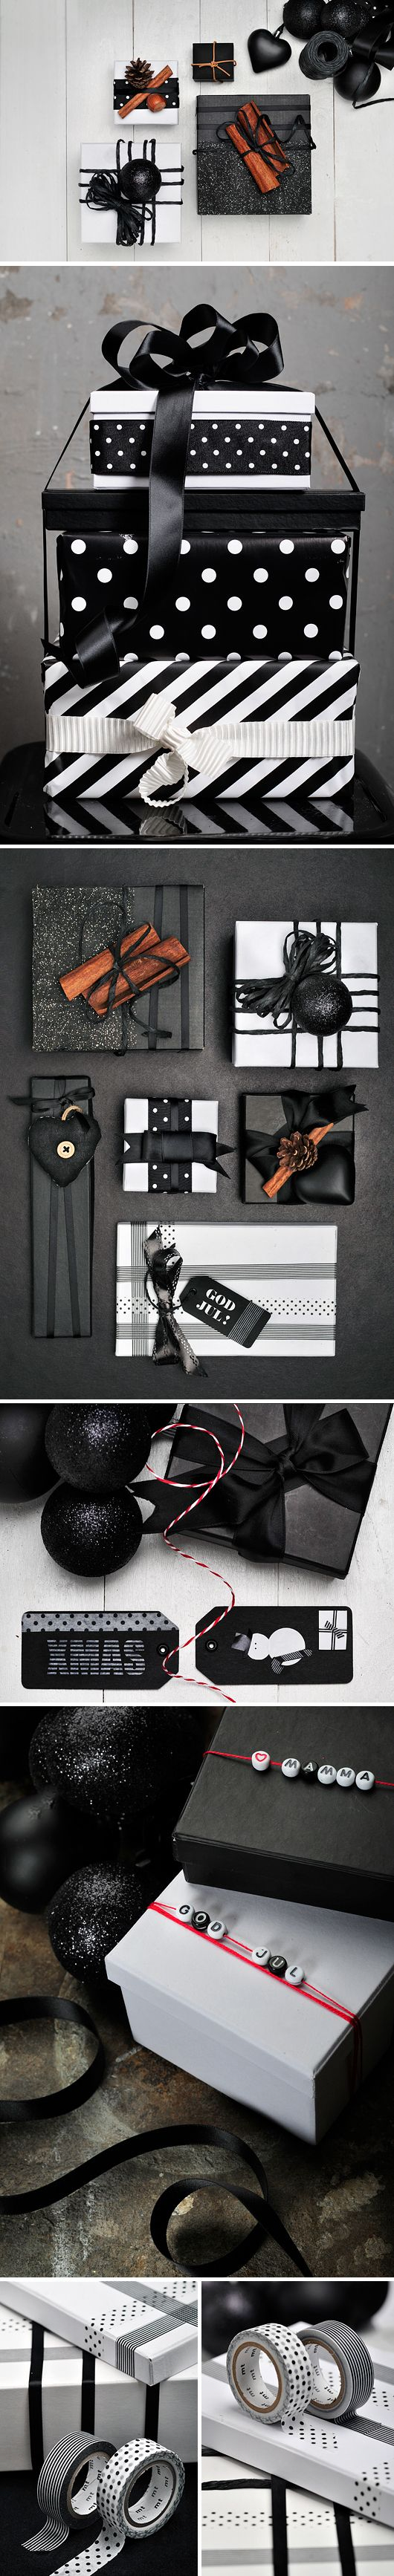 DIY Christmas Wrapping Ideas....